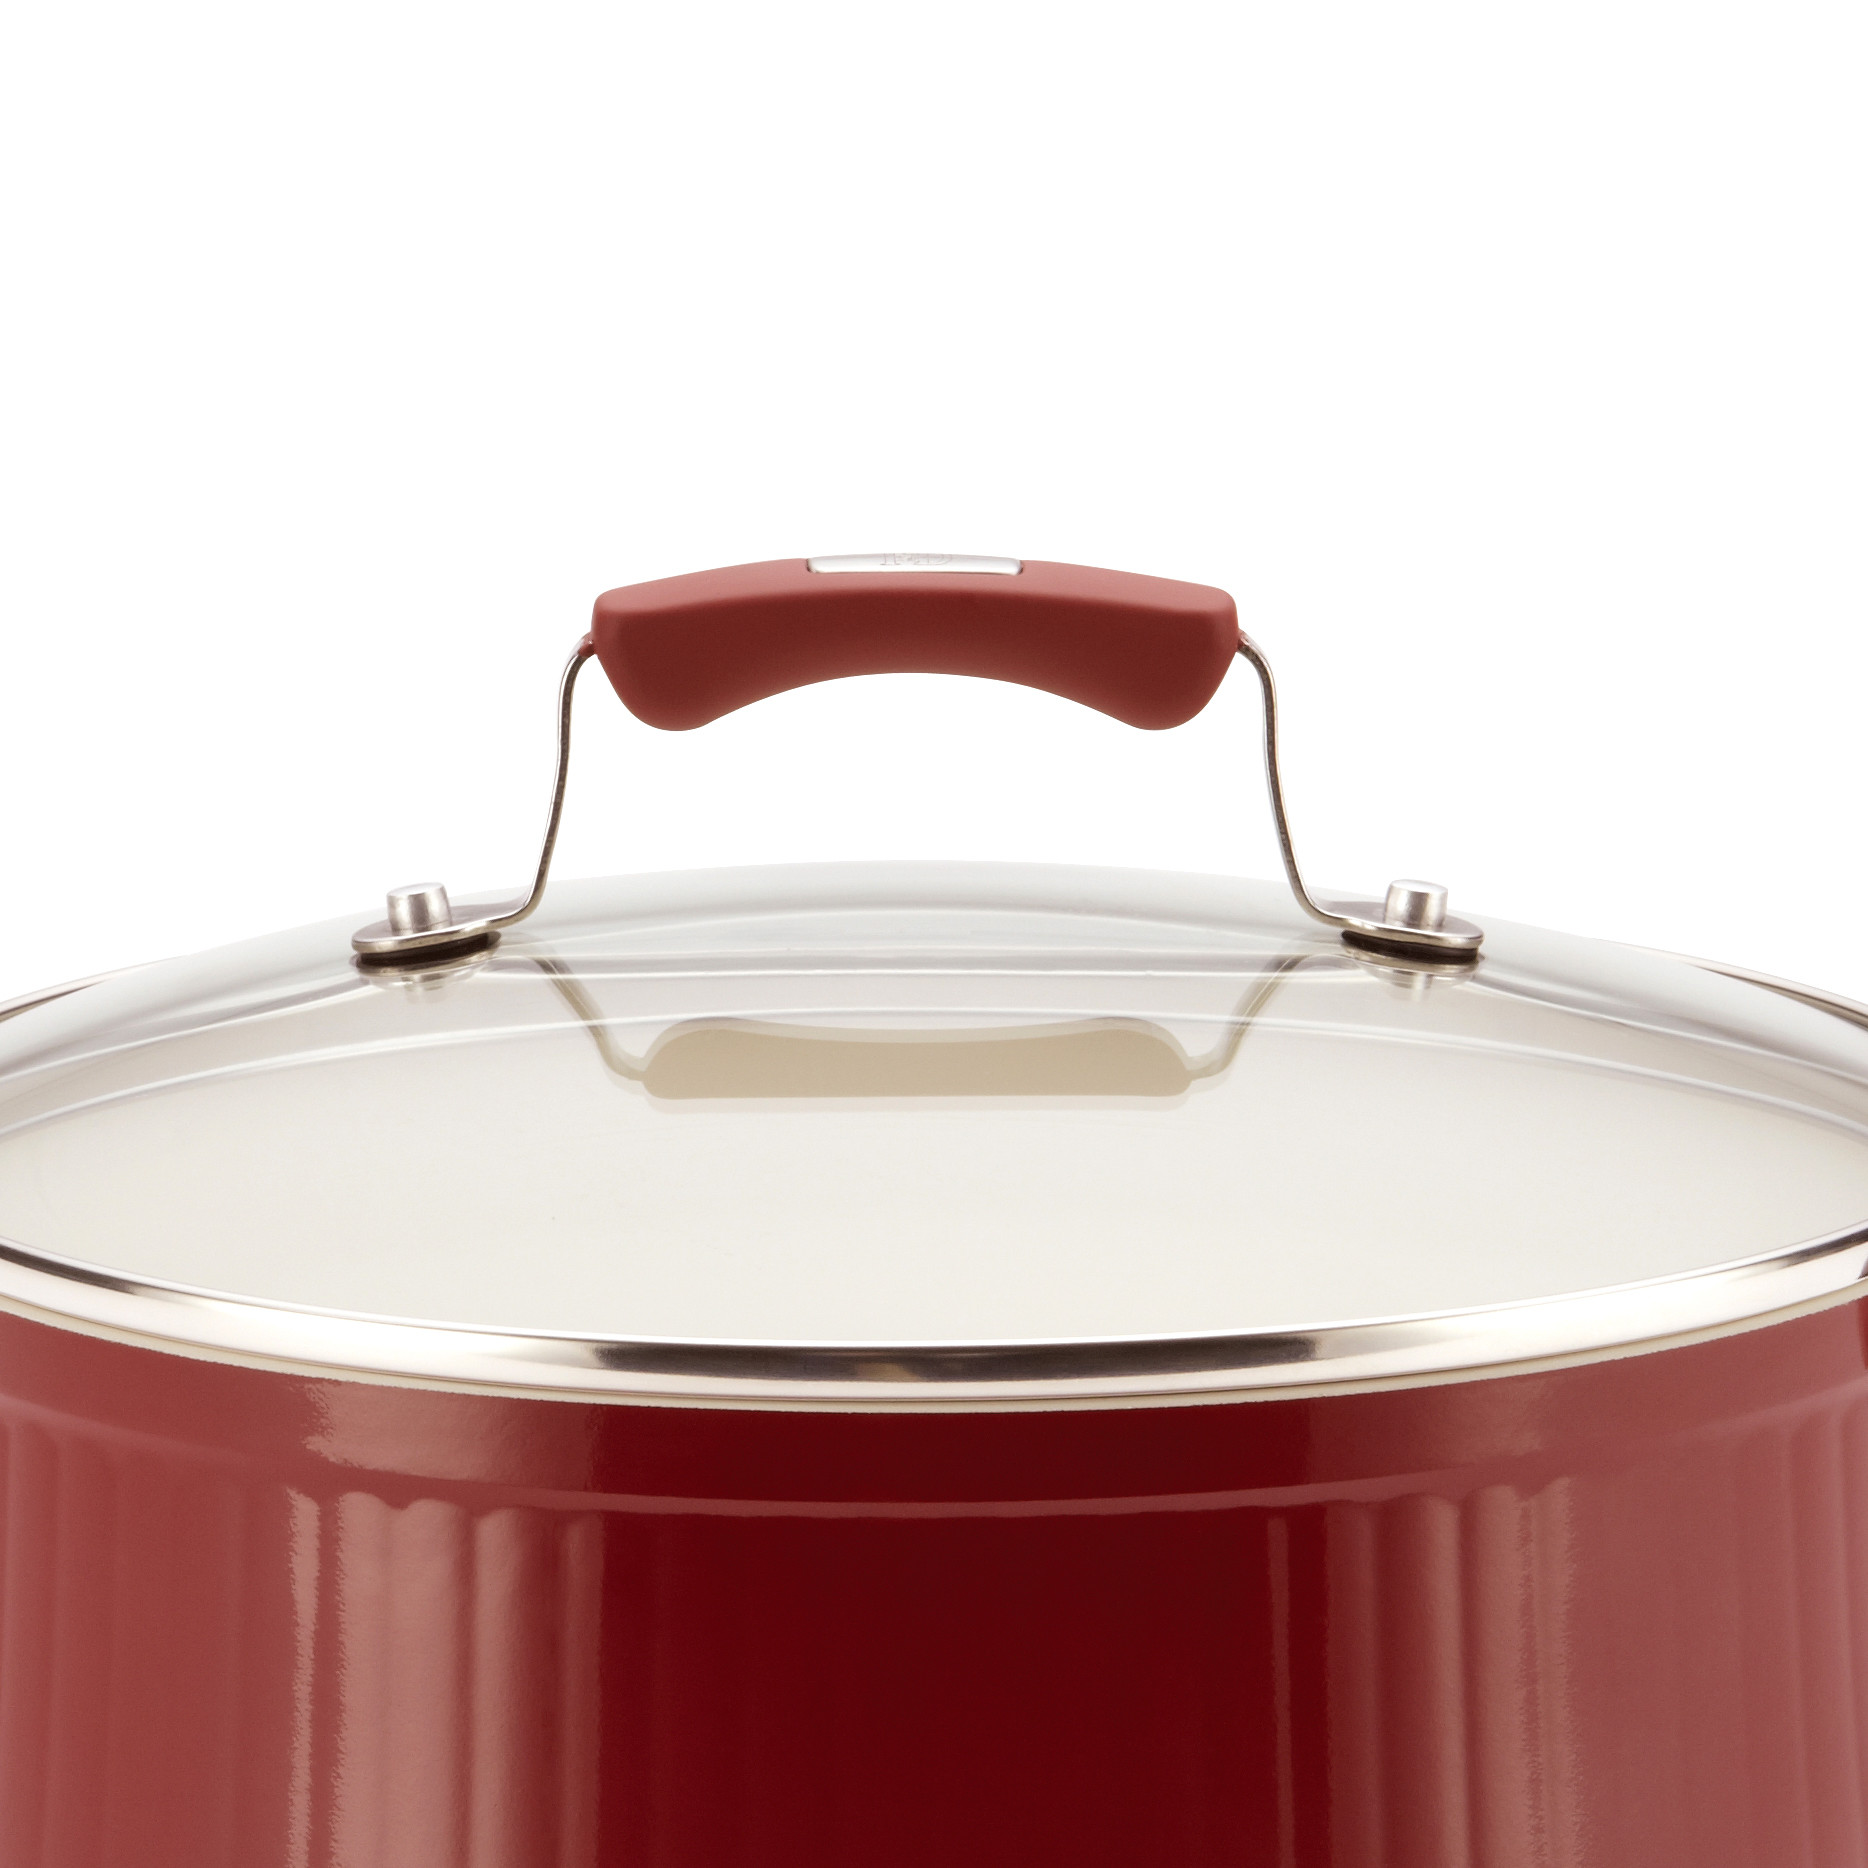 Paula Deen® Savannah 18-Piece Expansion  Aluminum Nonstick Cookware Set, Red